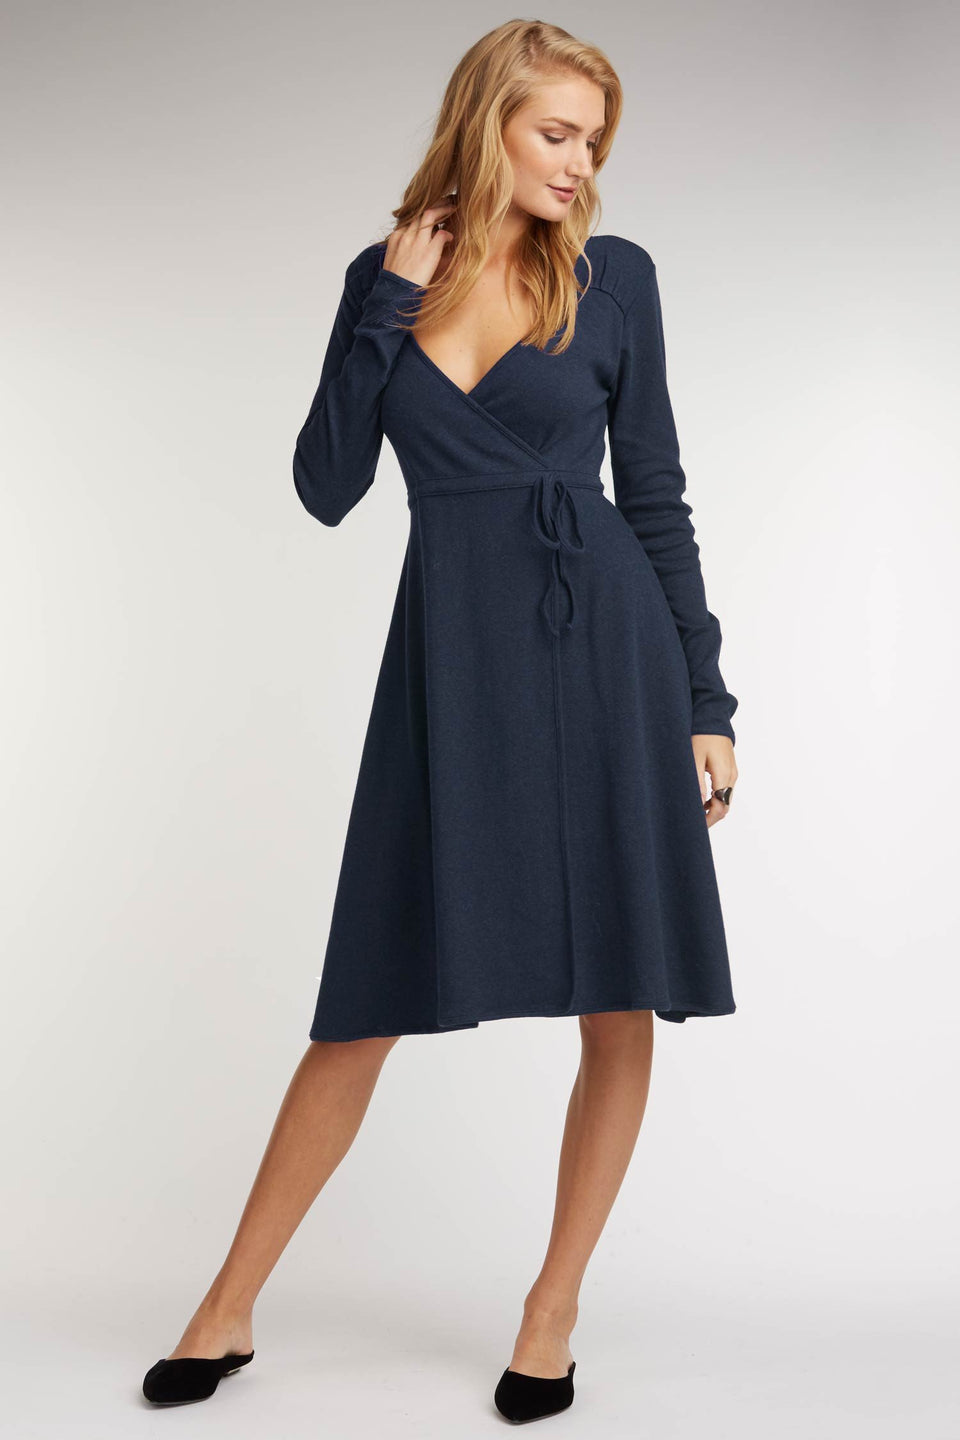 Ruched Tie Dress in Navy